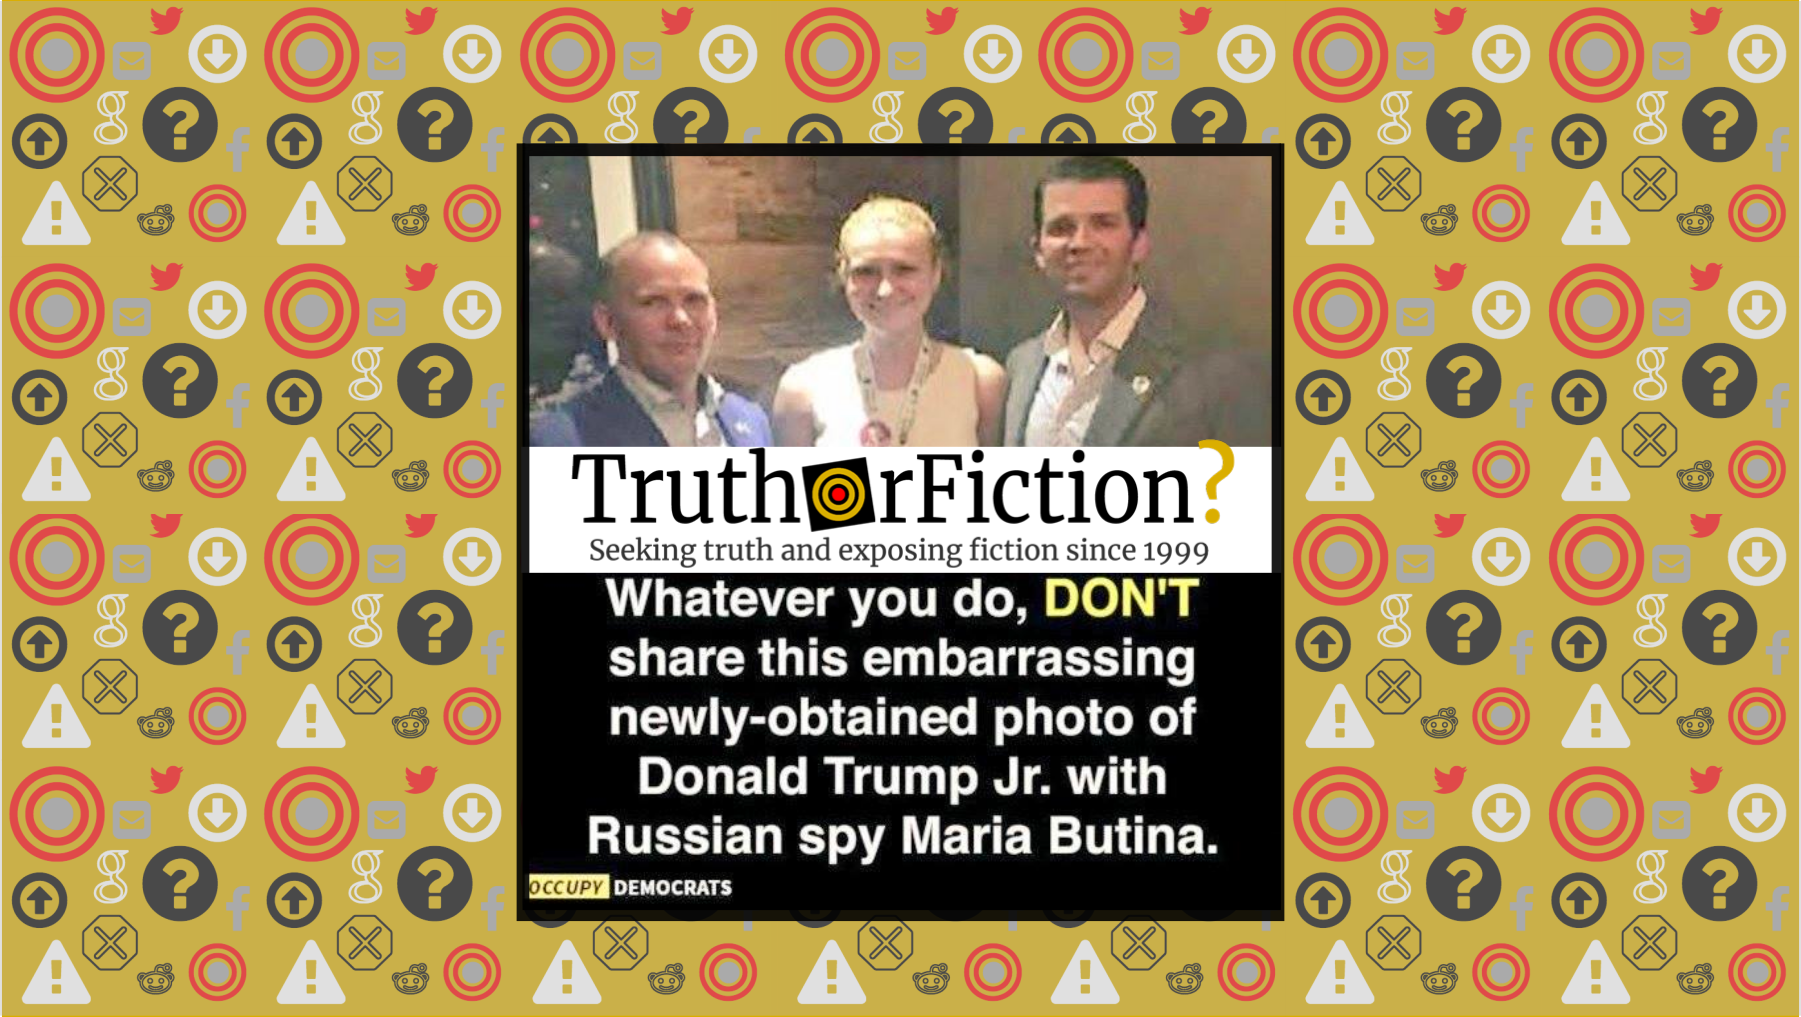 Does a 'Newly Obtained' Photograph Show Donald Trump, Jr. with Accused Spy Maria Butina?